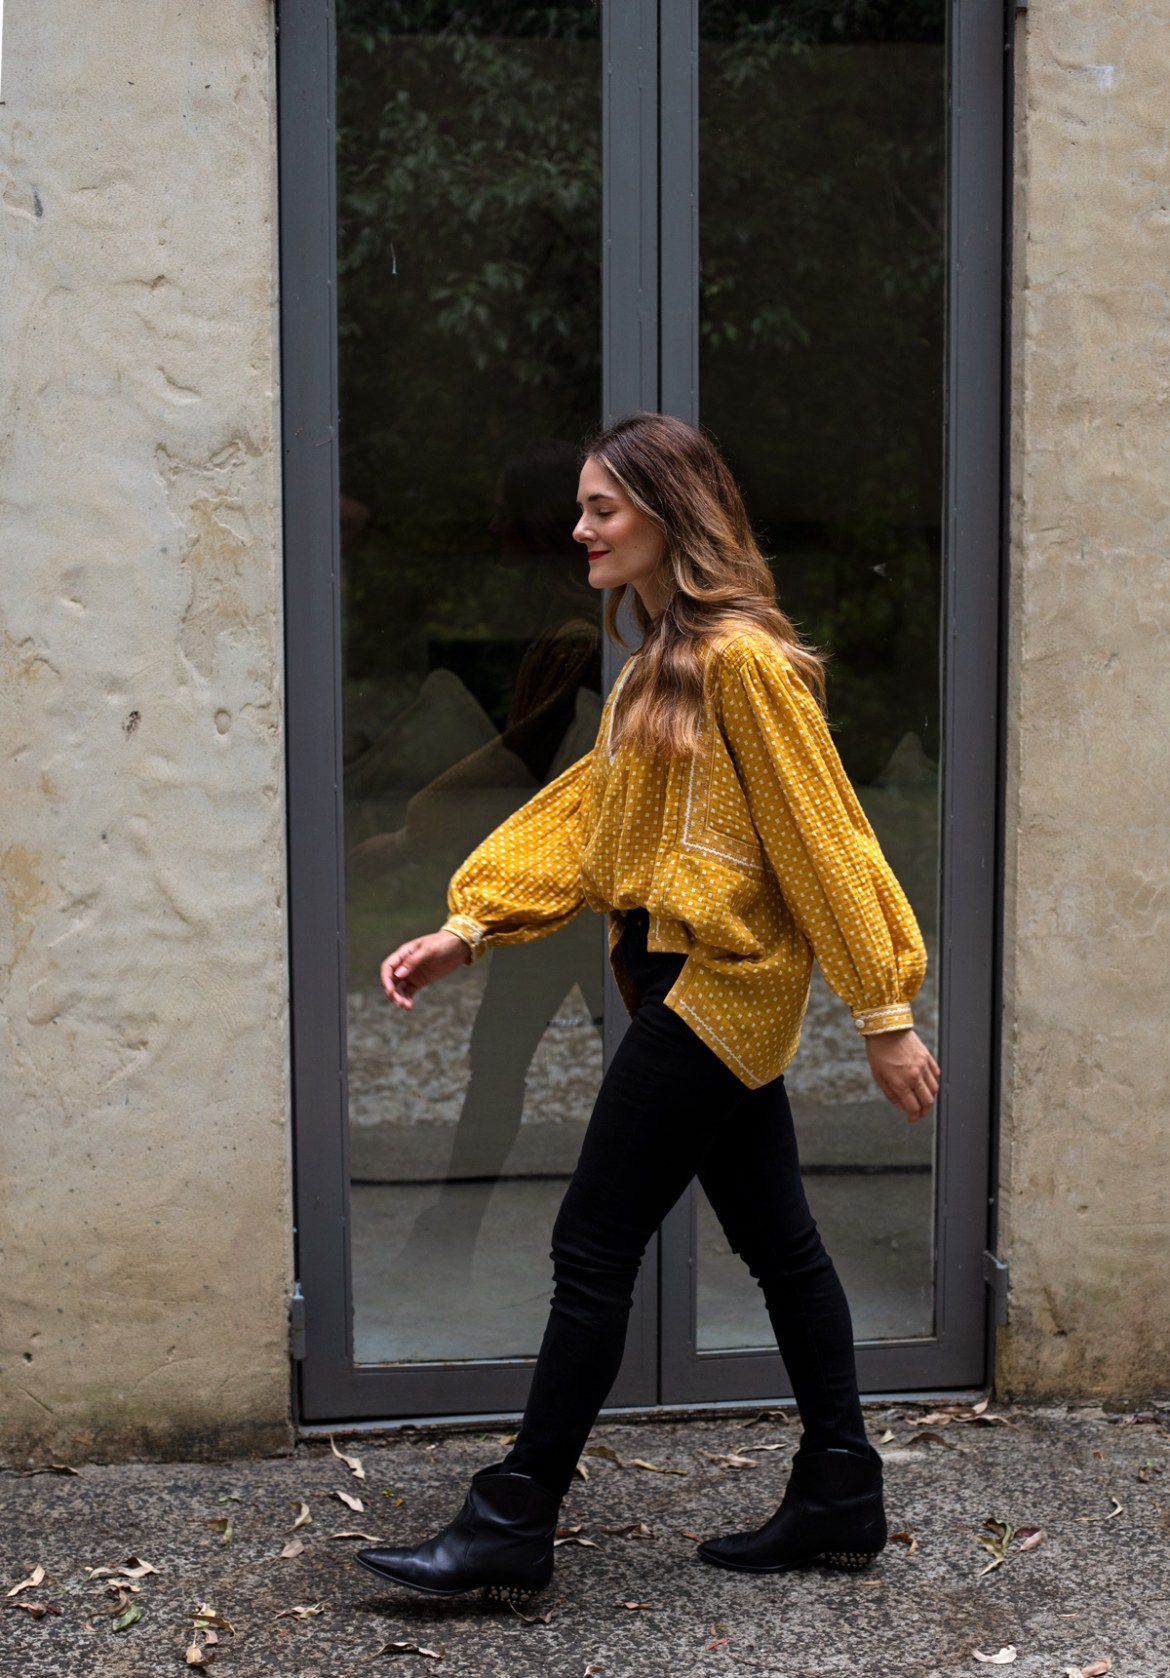 Yellow Bohemian Traders blouse and black skinny jeans outfit idea for spring